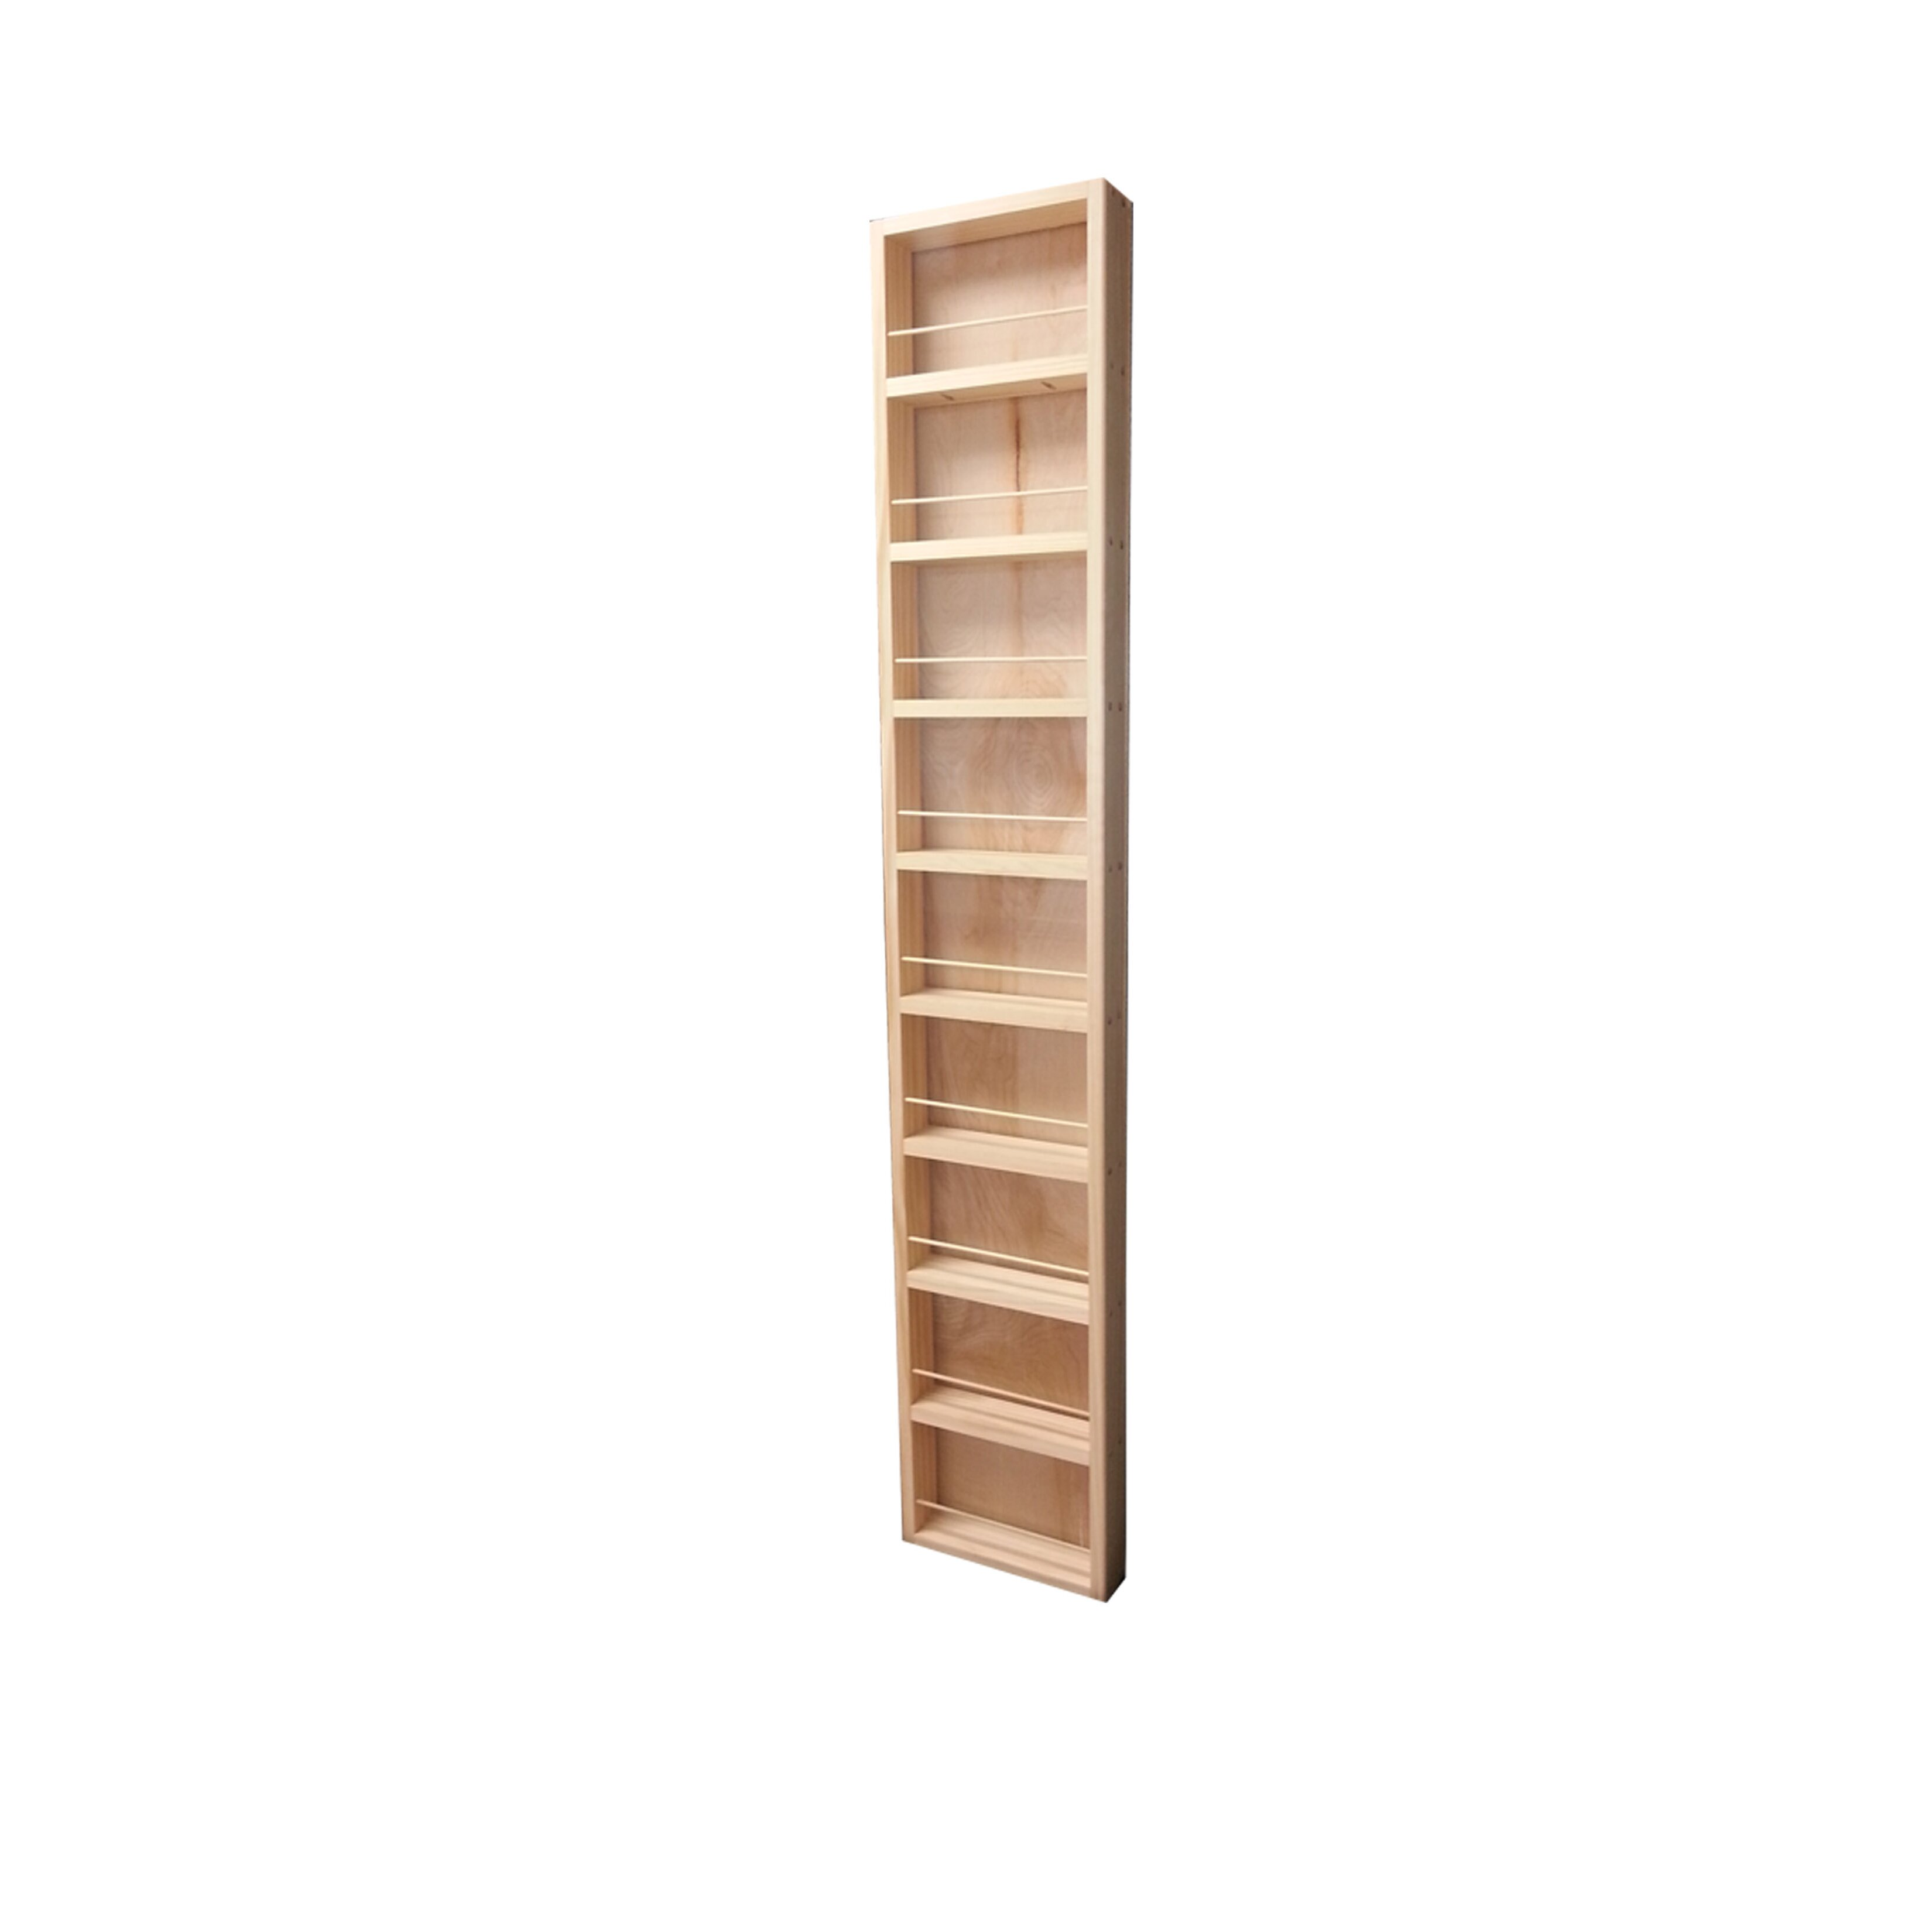 wg wood products midland premium wall mounted spice rack reviews wayfair. Black Bedroom Furniture Sets. Home Design Ideas